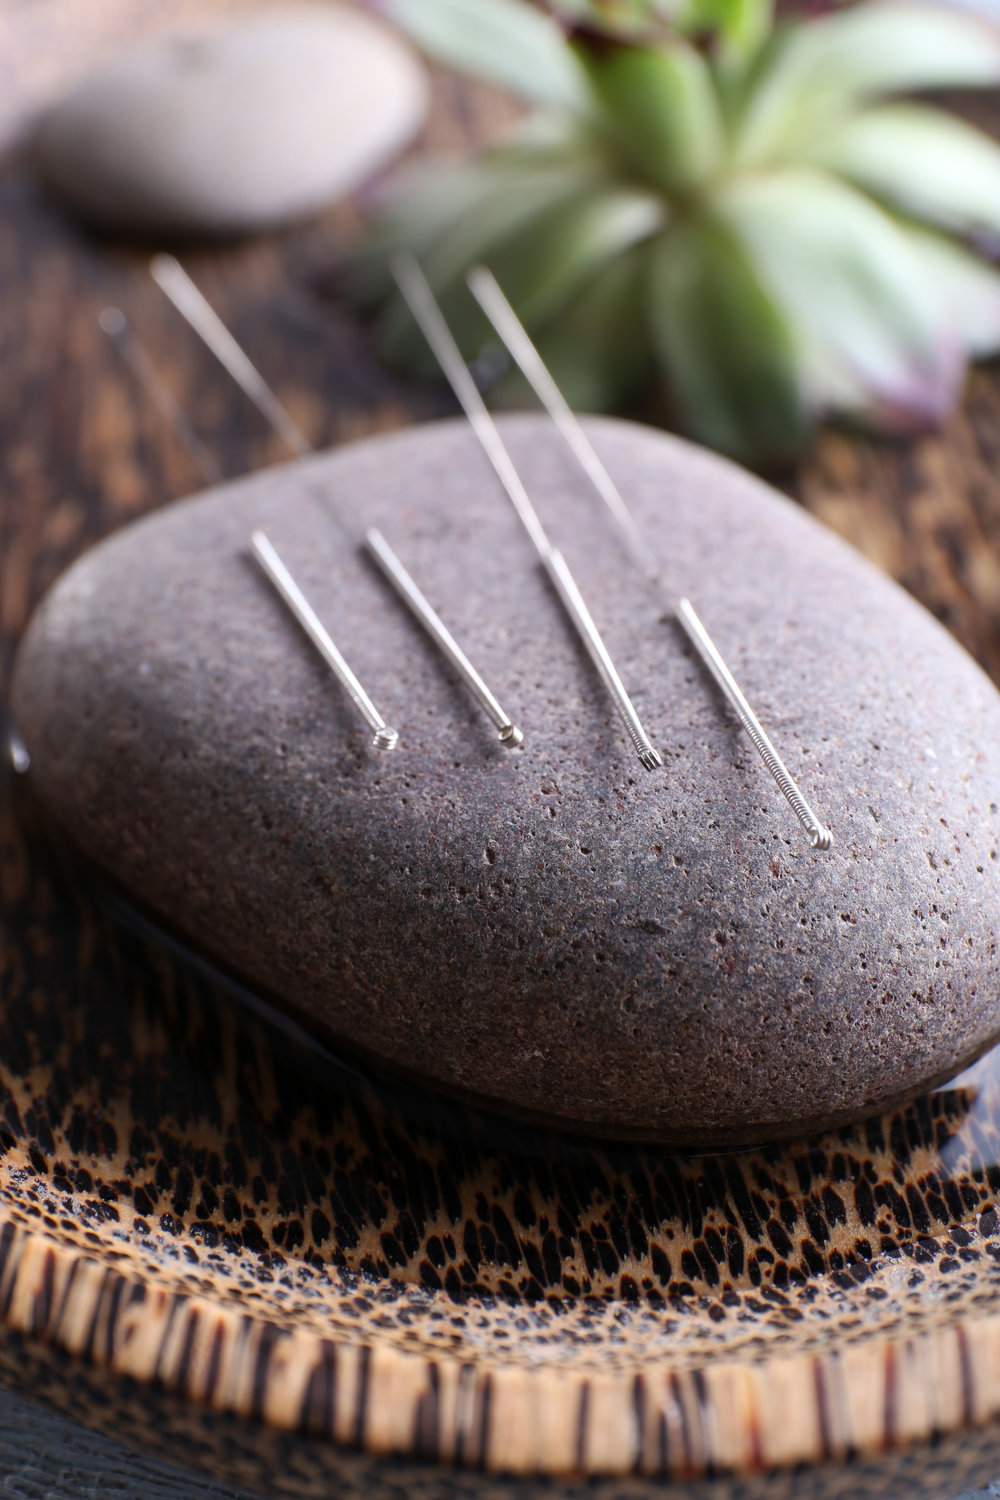 pg-acupuncture-needles-on-stones